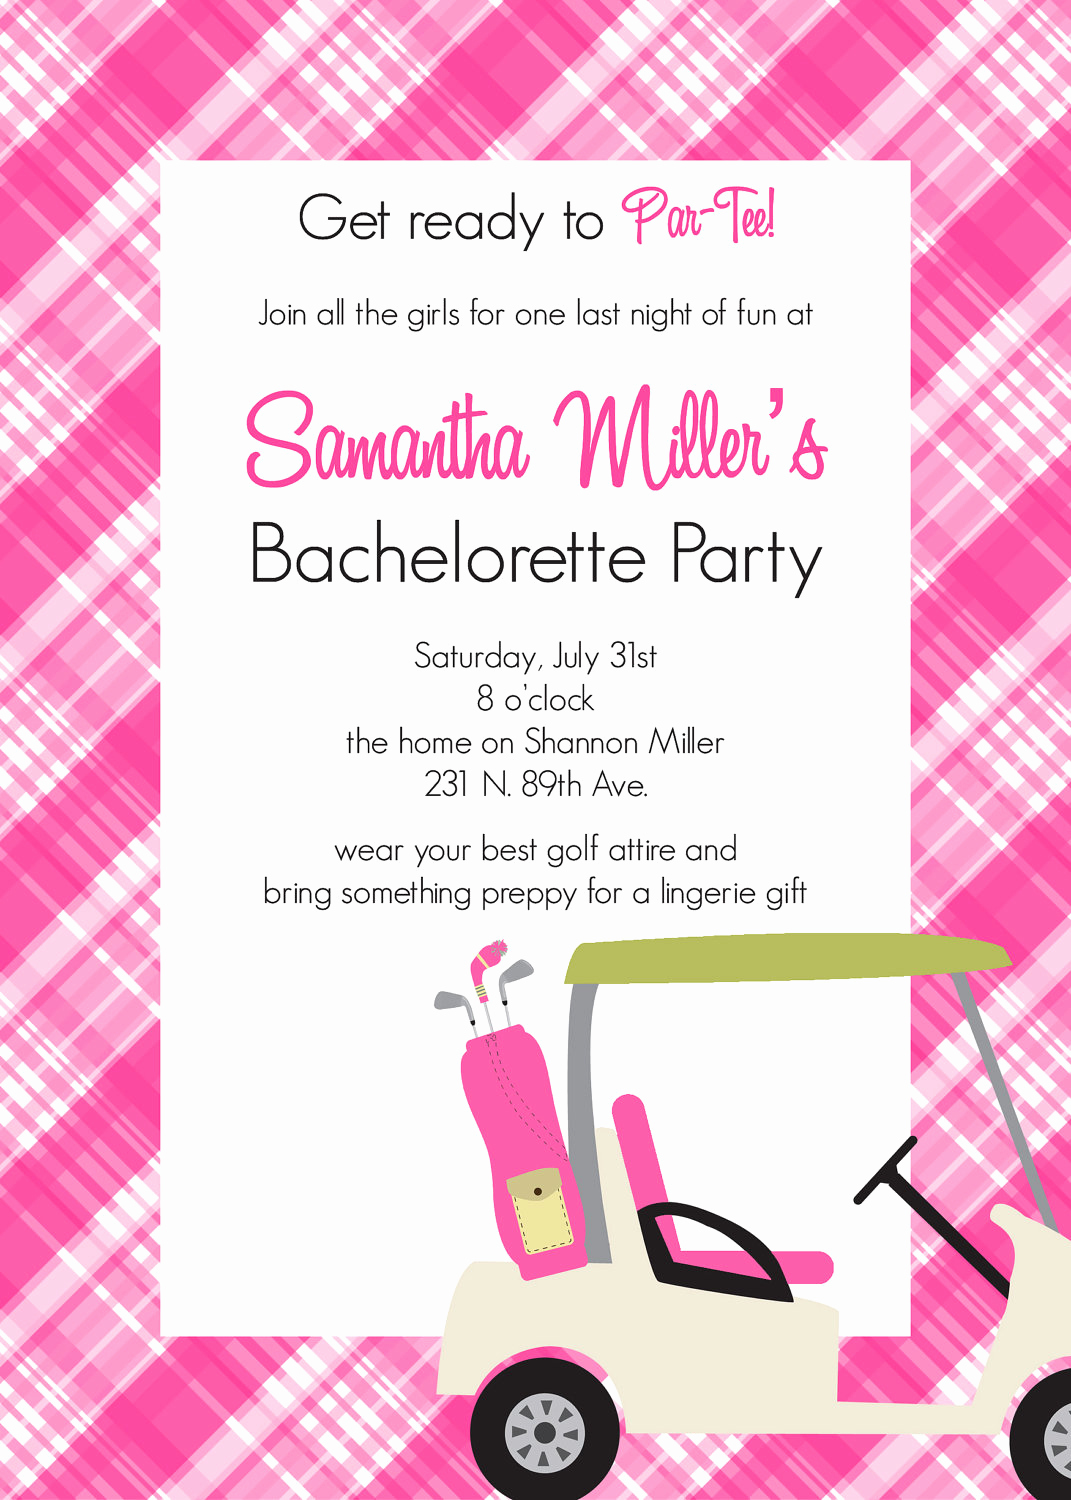 Bachelorette Party Invitation Ideas Inspirational atl Bachelorette Resource